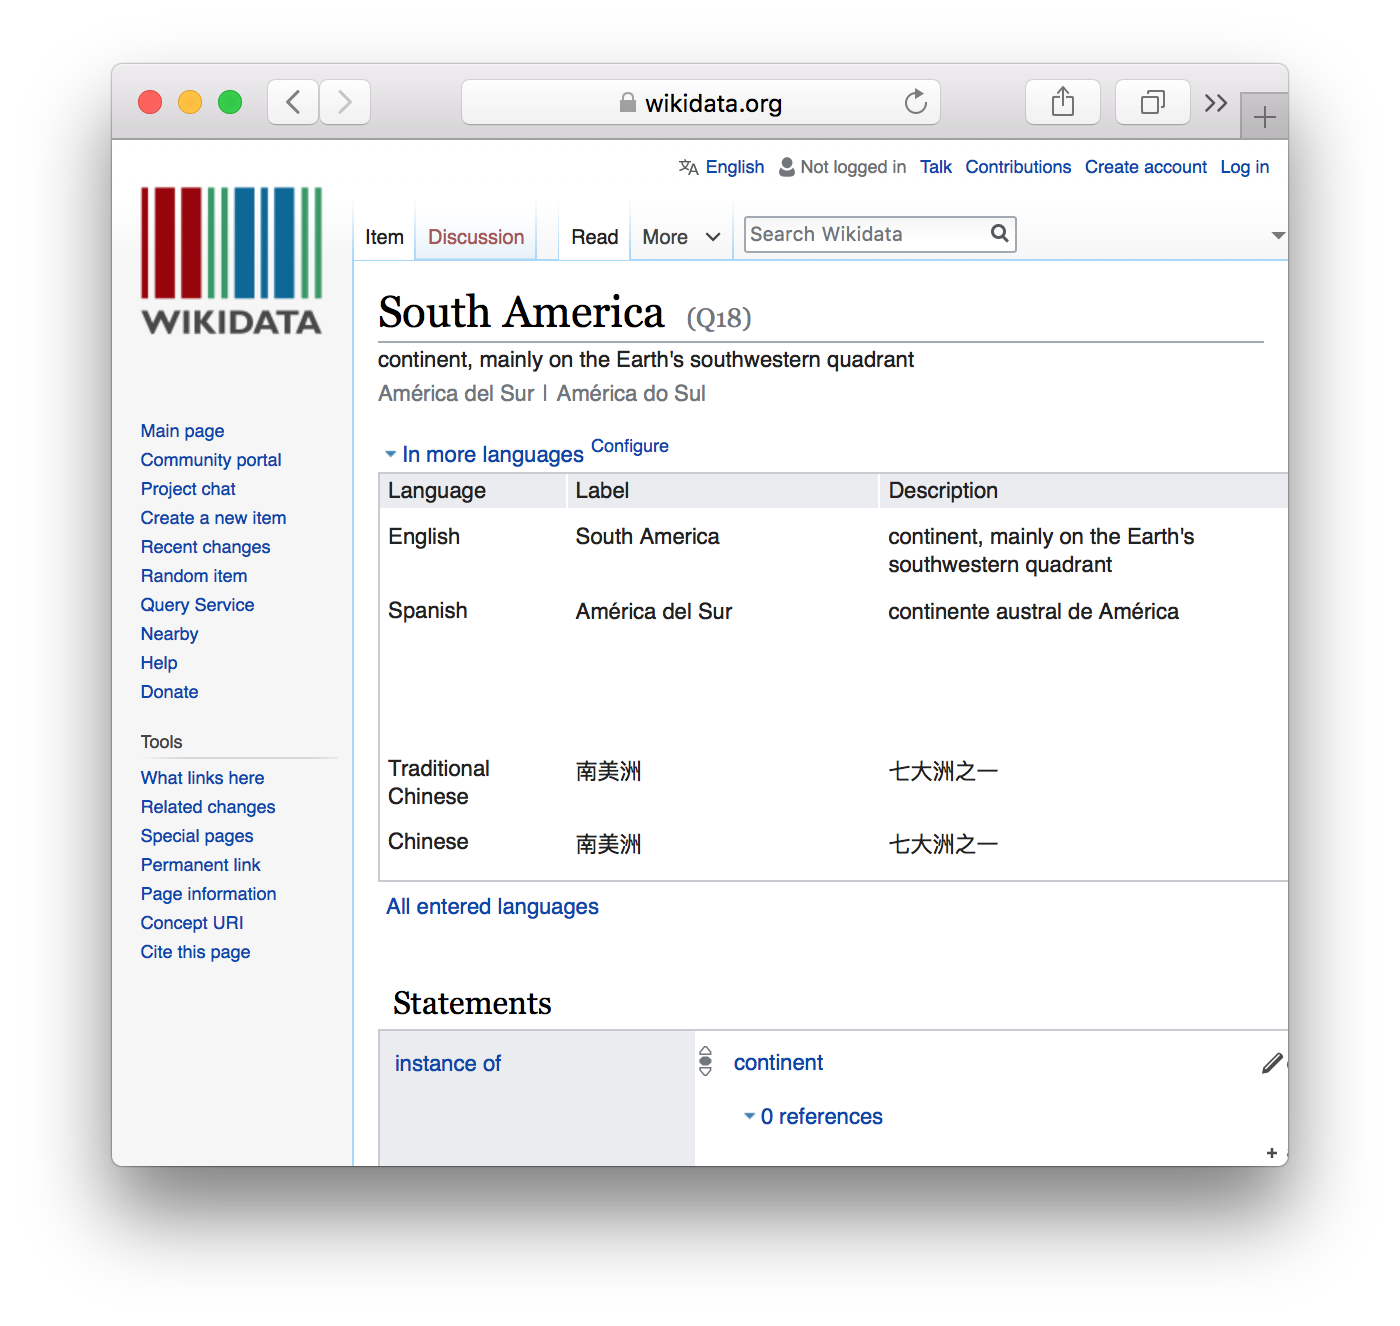 Wikidata page for South America